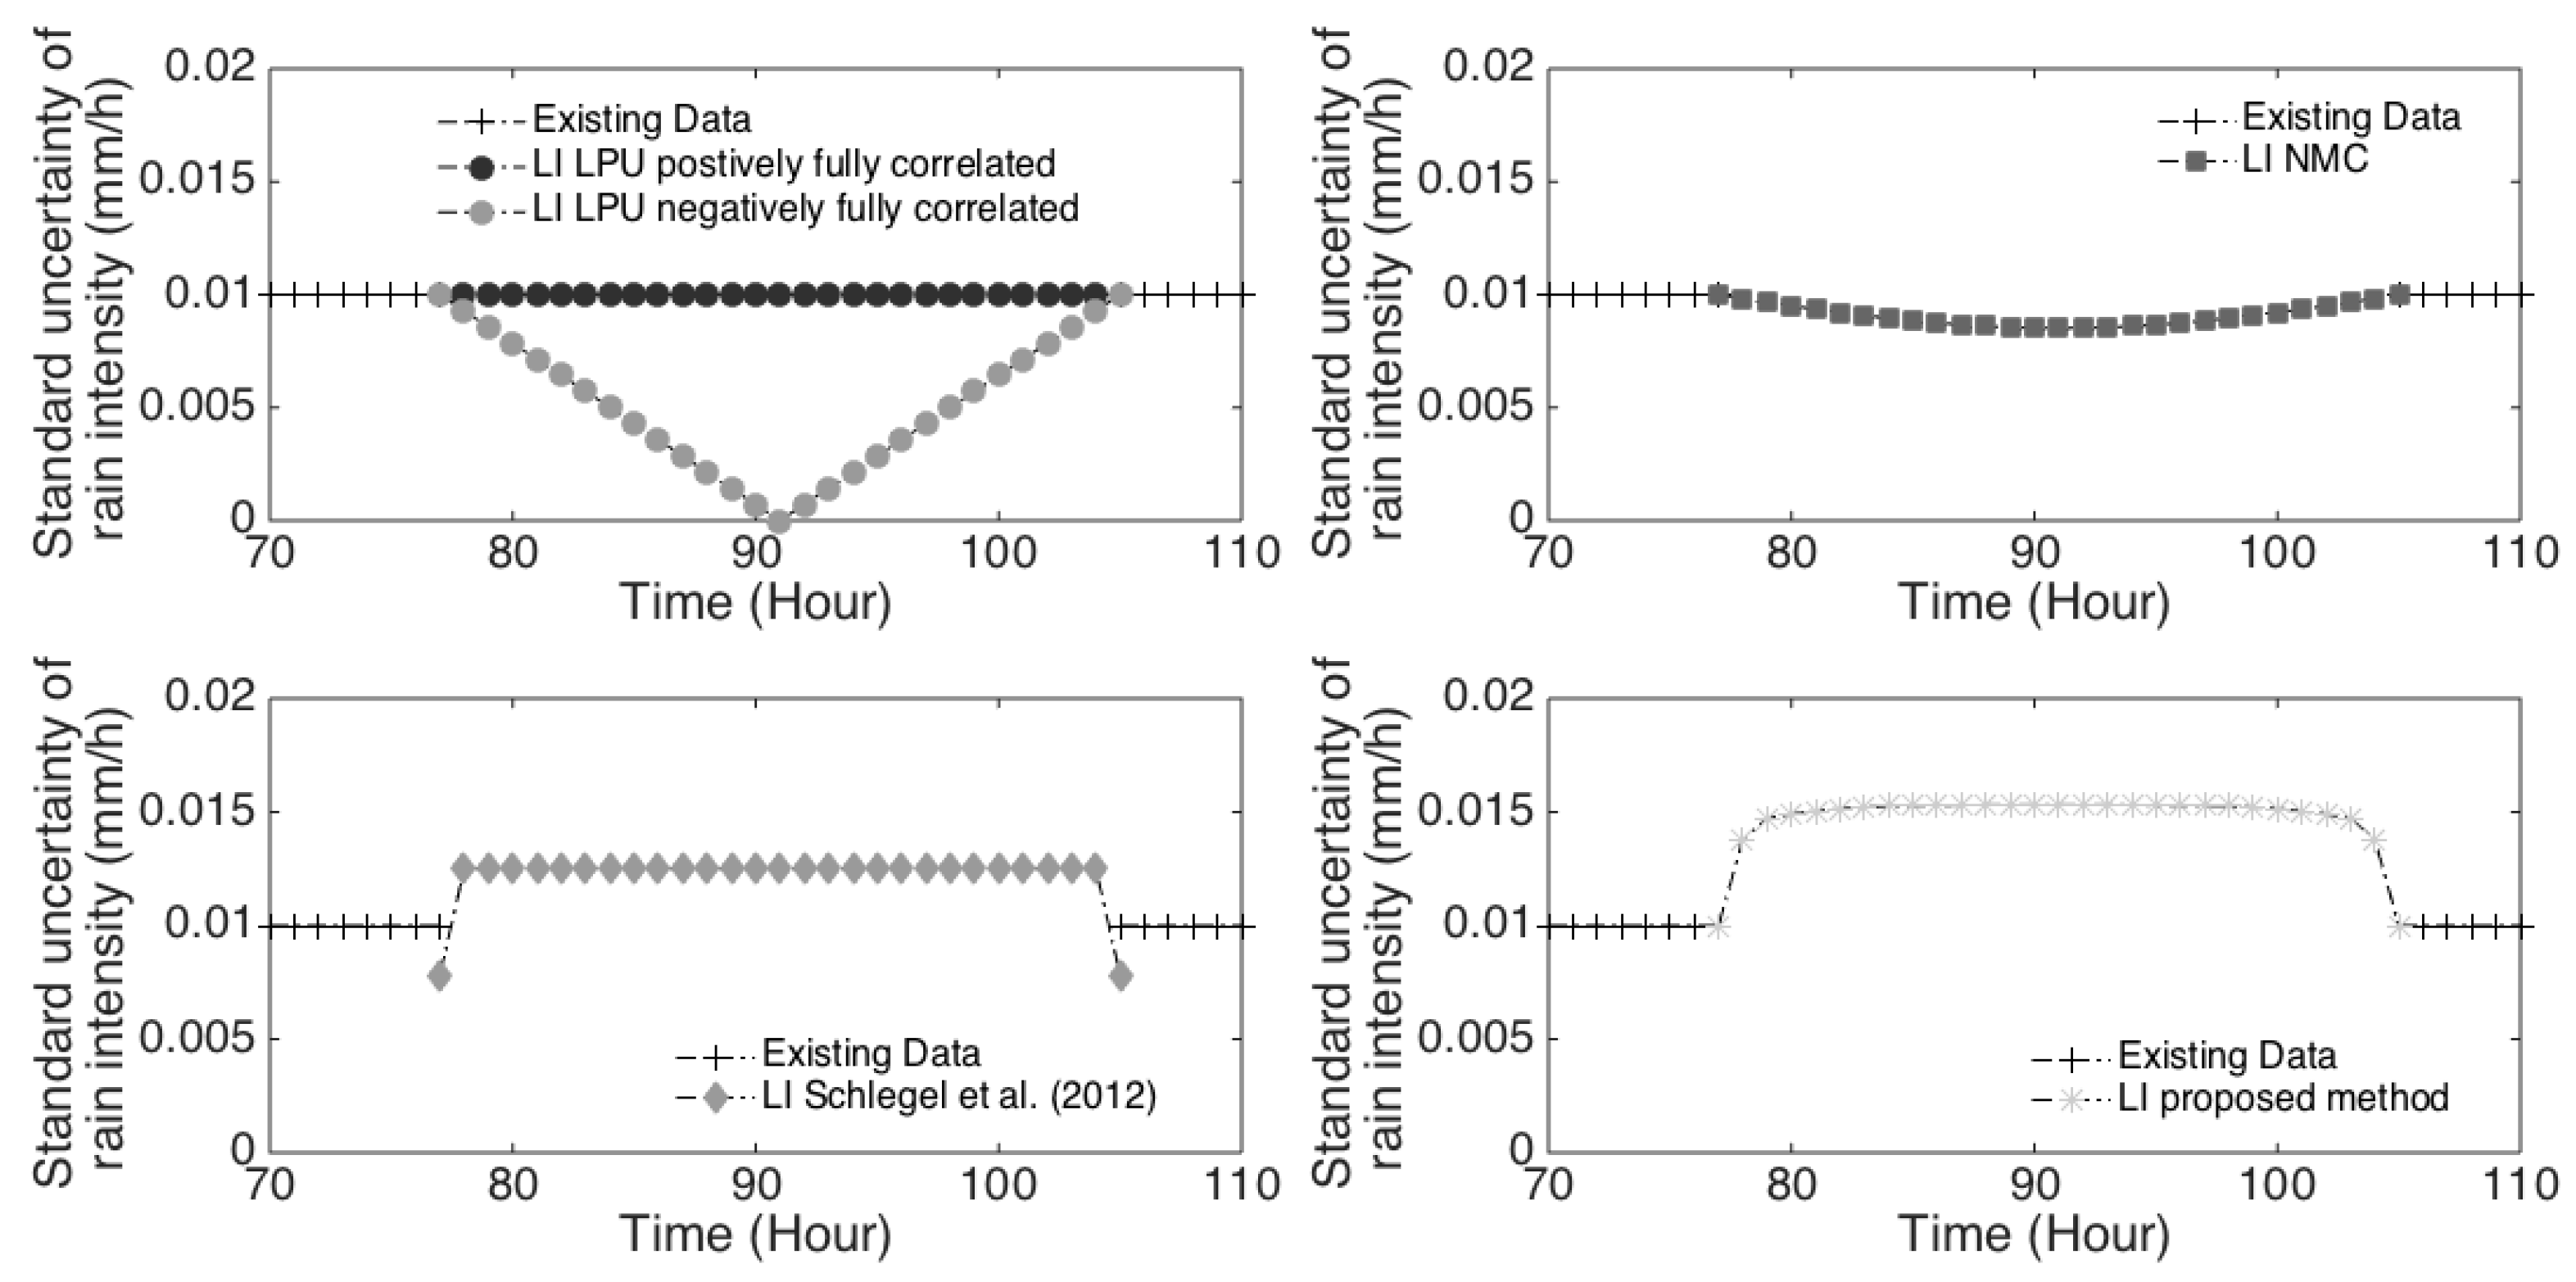 Water Free Full Text Interpolation In Time Series An Introductive Overview Of Existing Methods Their Performance Criteria And Uncertainty Assessment Html